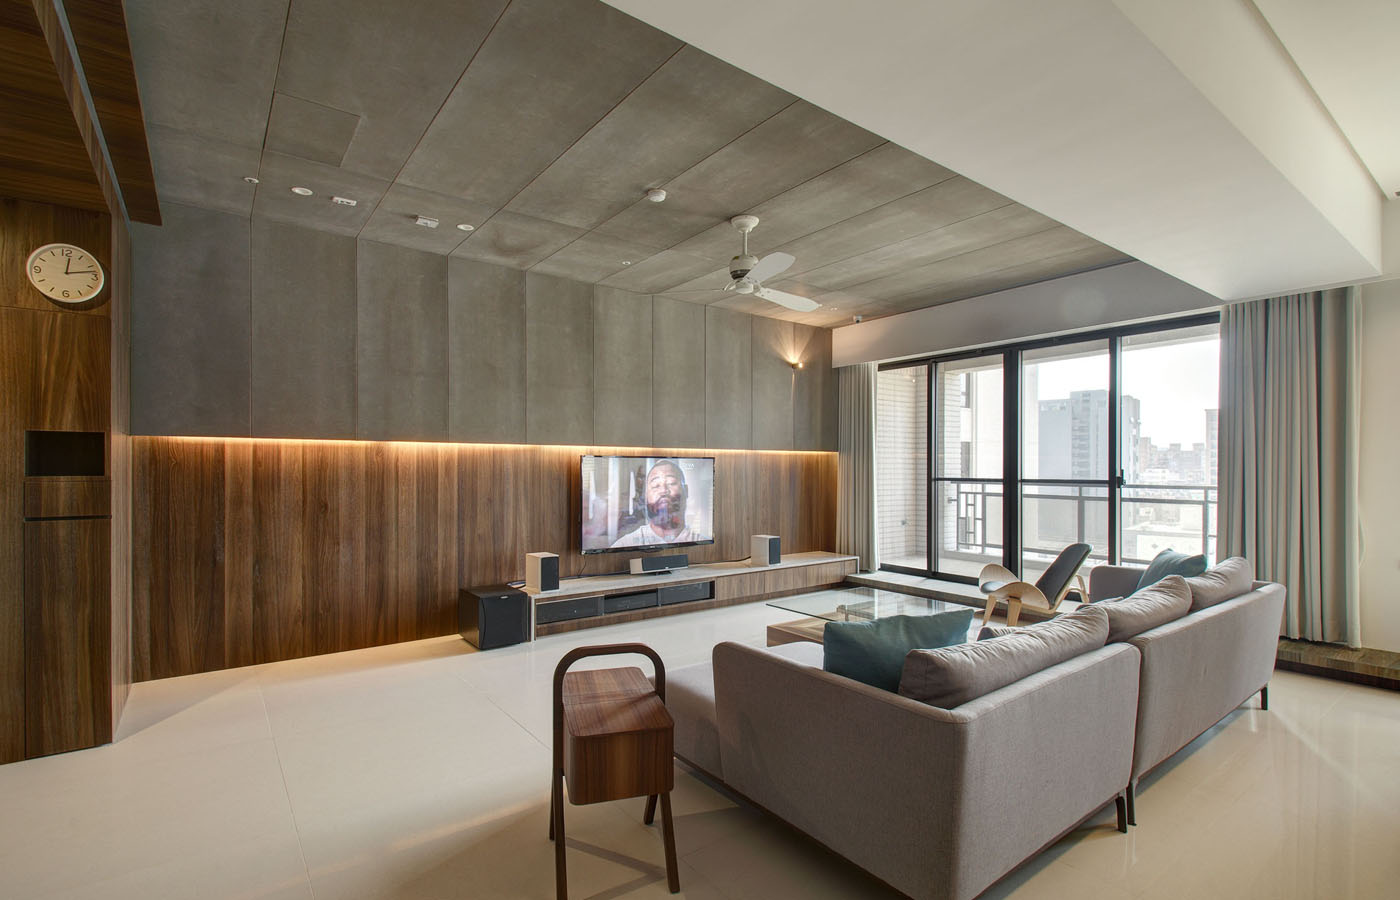 Modern apartment designs by phase6 design studio for Modern contemporary interior design ideas